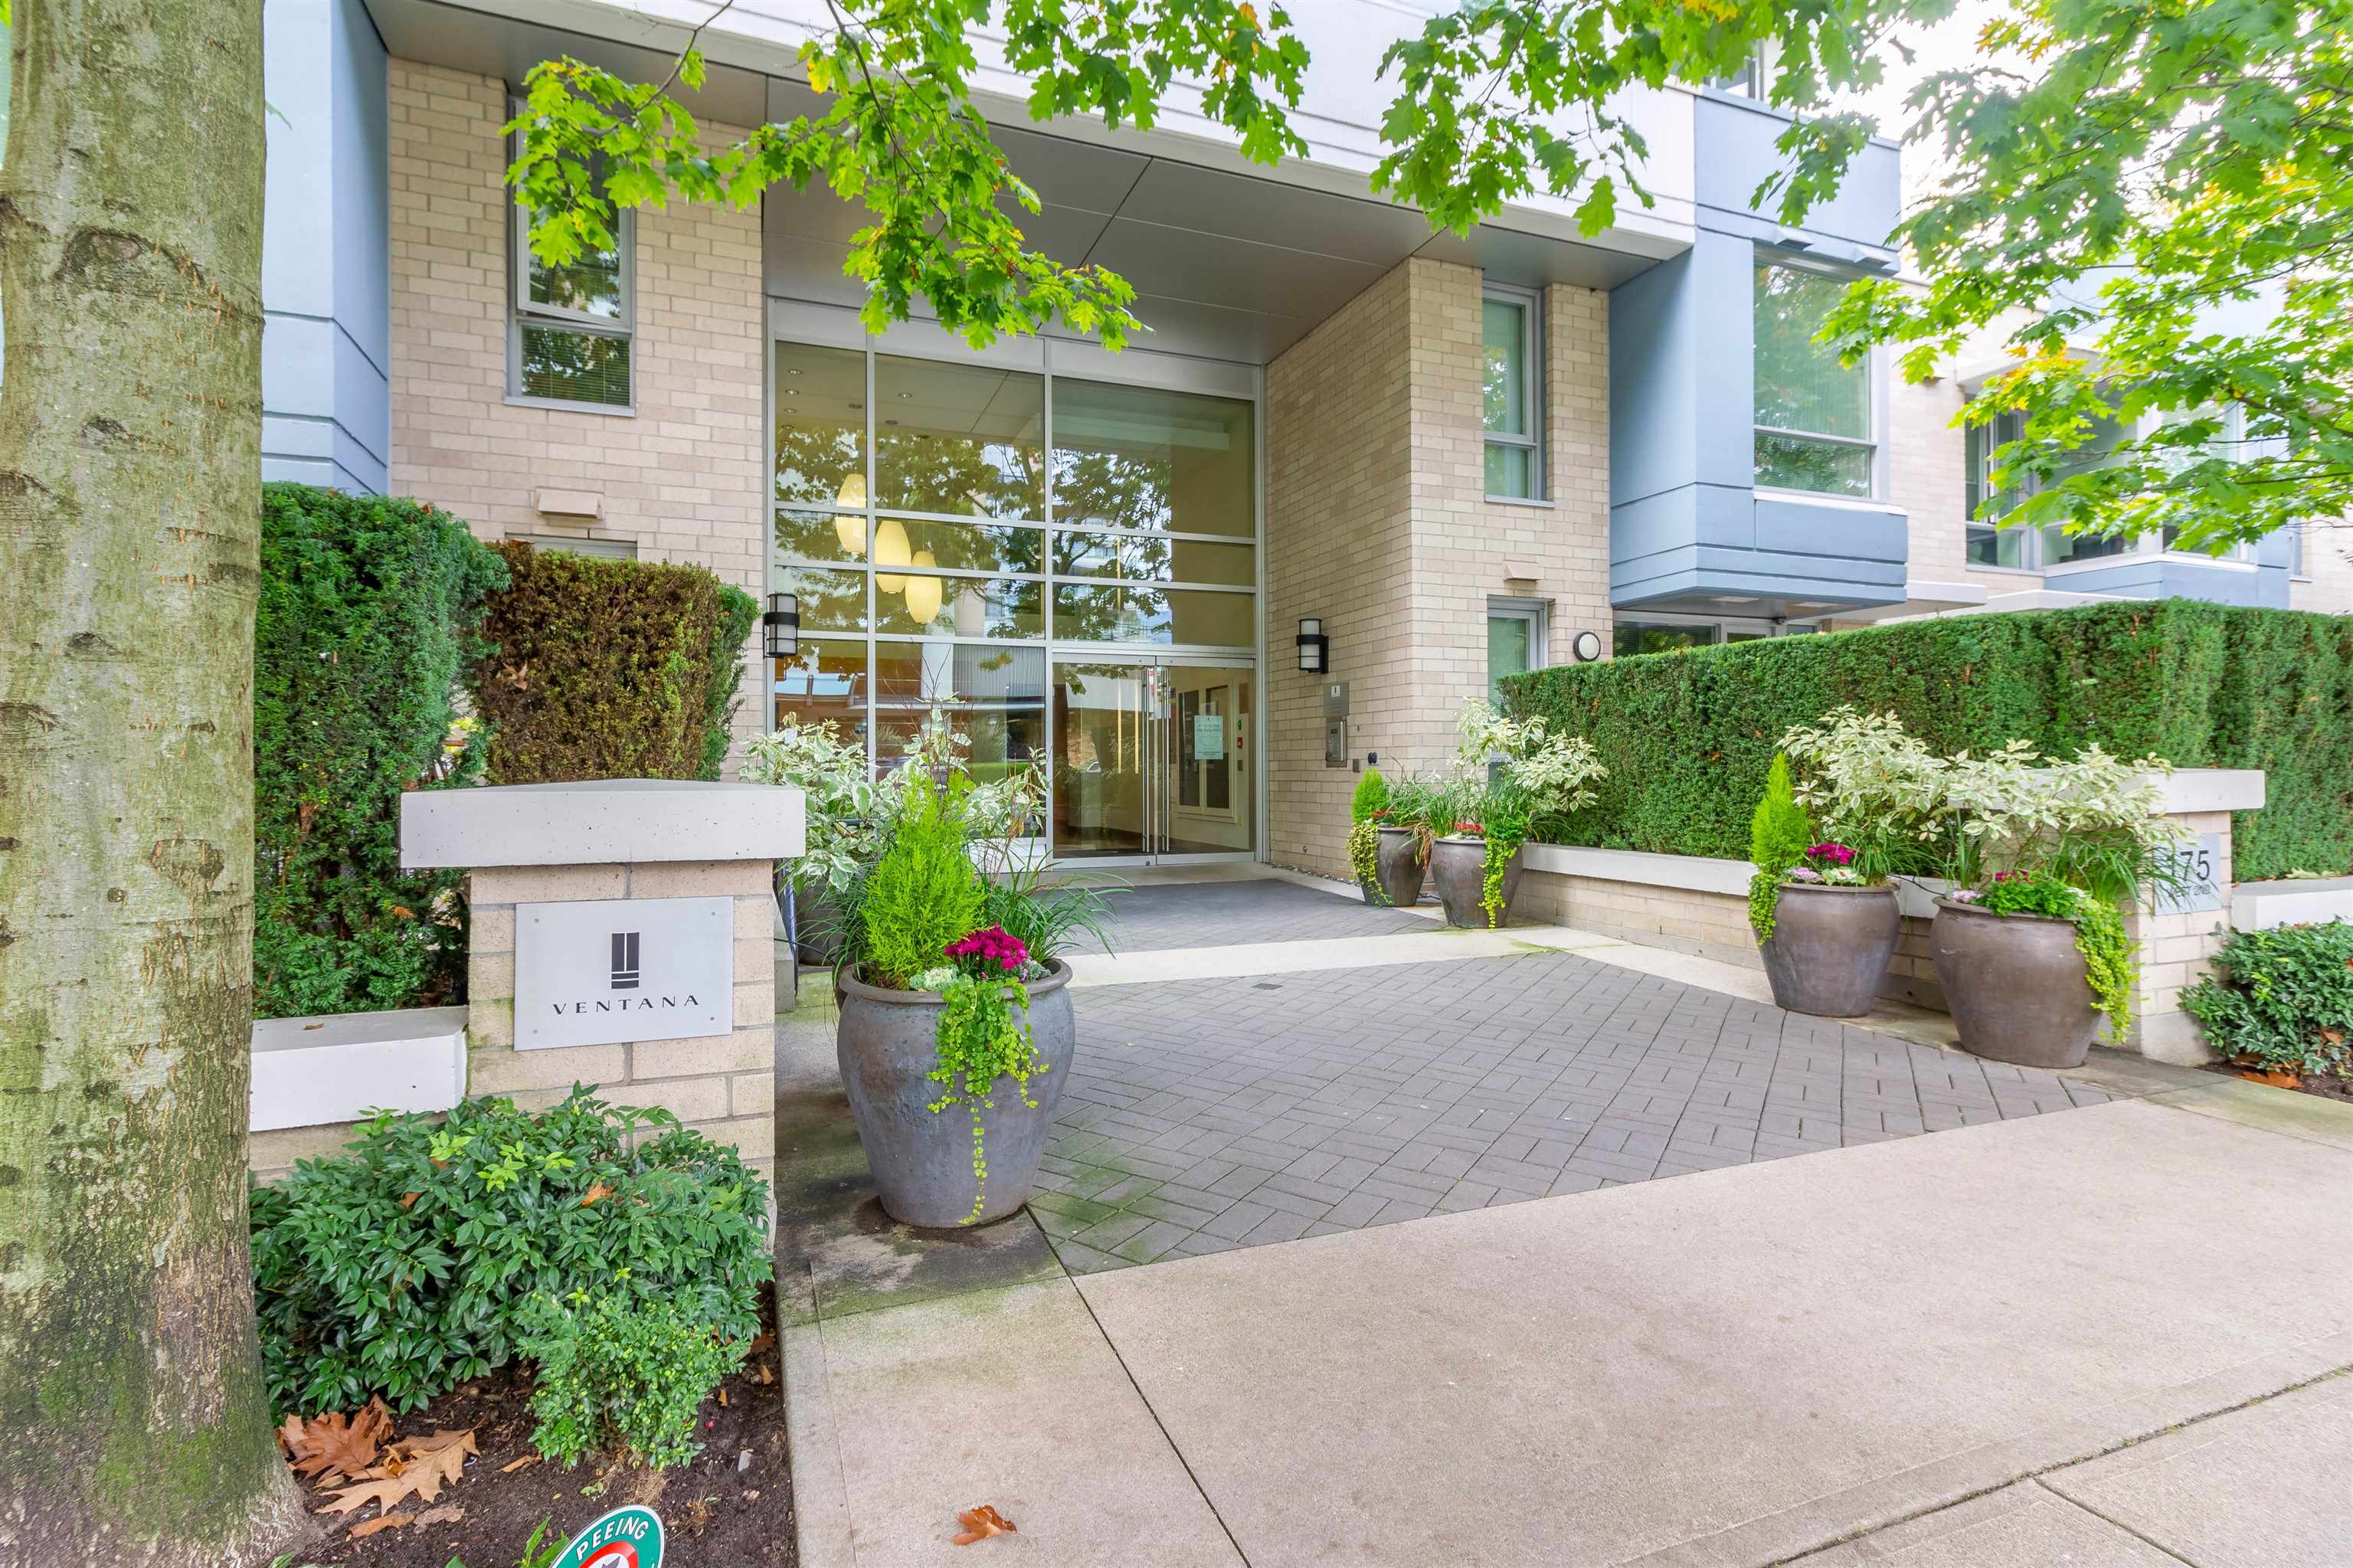 208 175 W 2ND STREET - Lower Lonsdale Apartment/Condo for sale, 1 Bedroom (R2625562) - #30